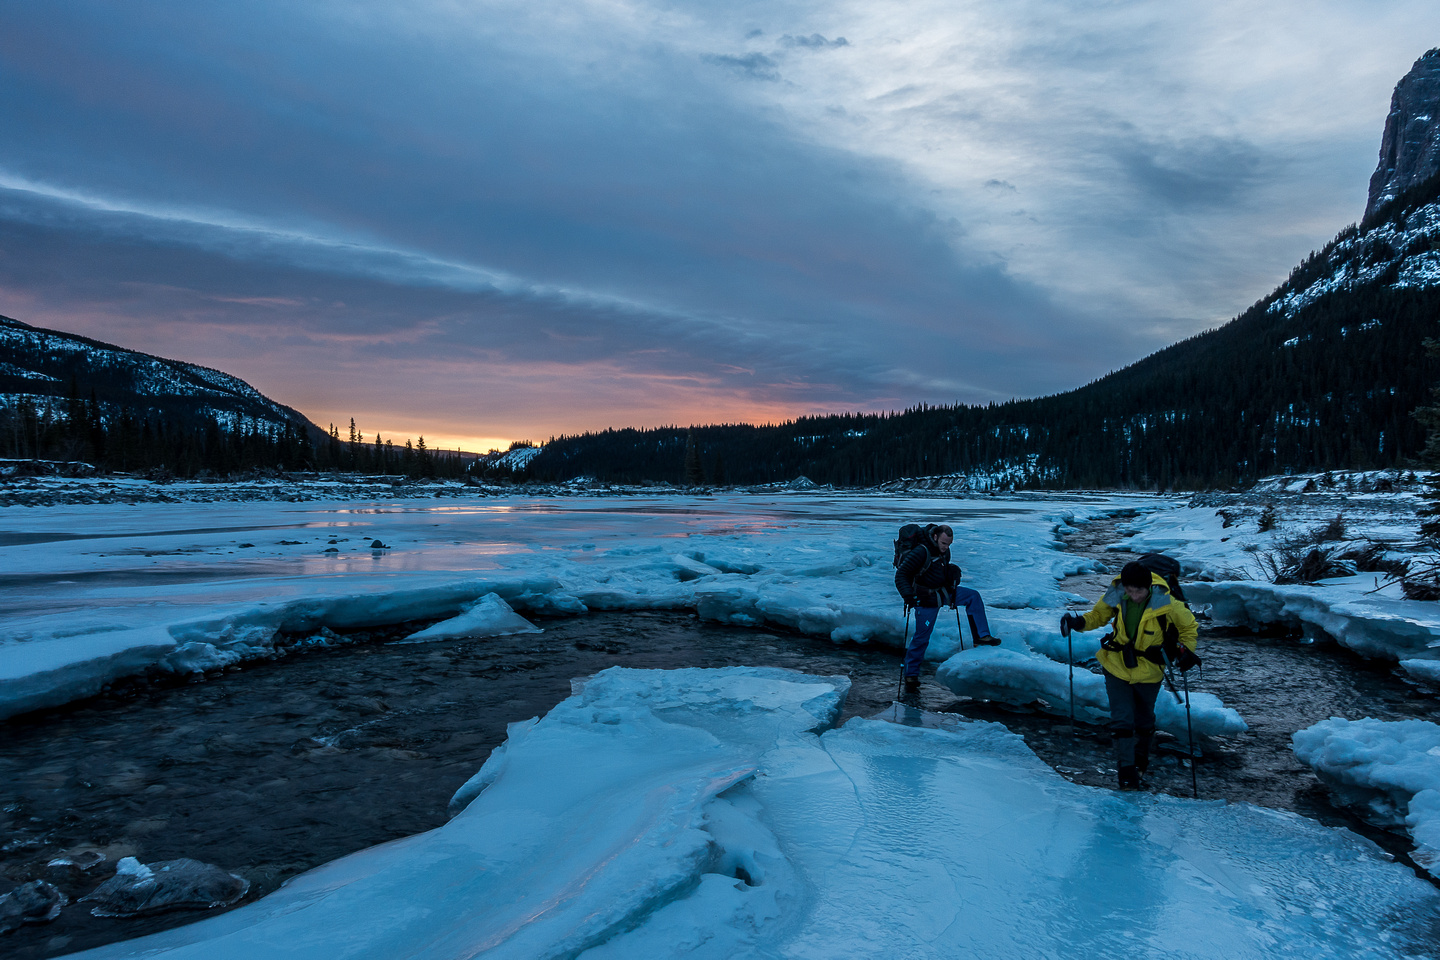 Crossing the partially frozen Ghost River.